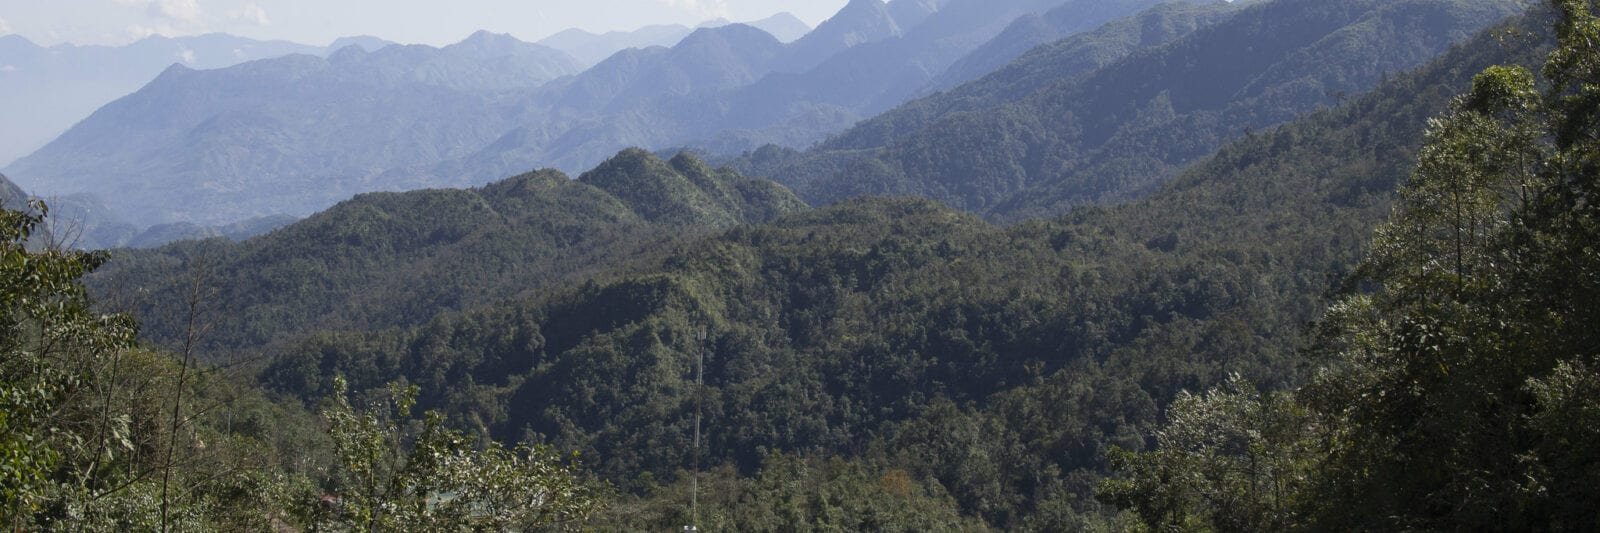 Image of mountains in Vietnam